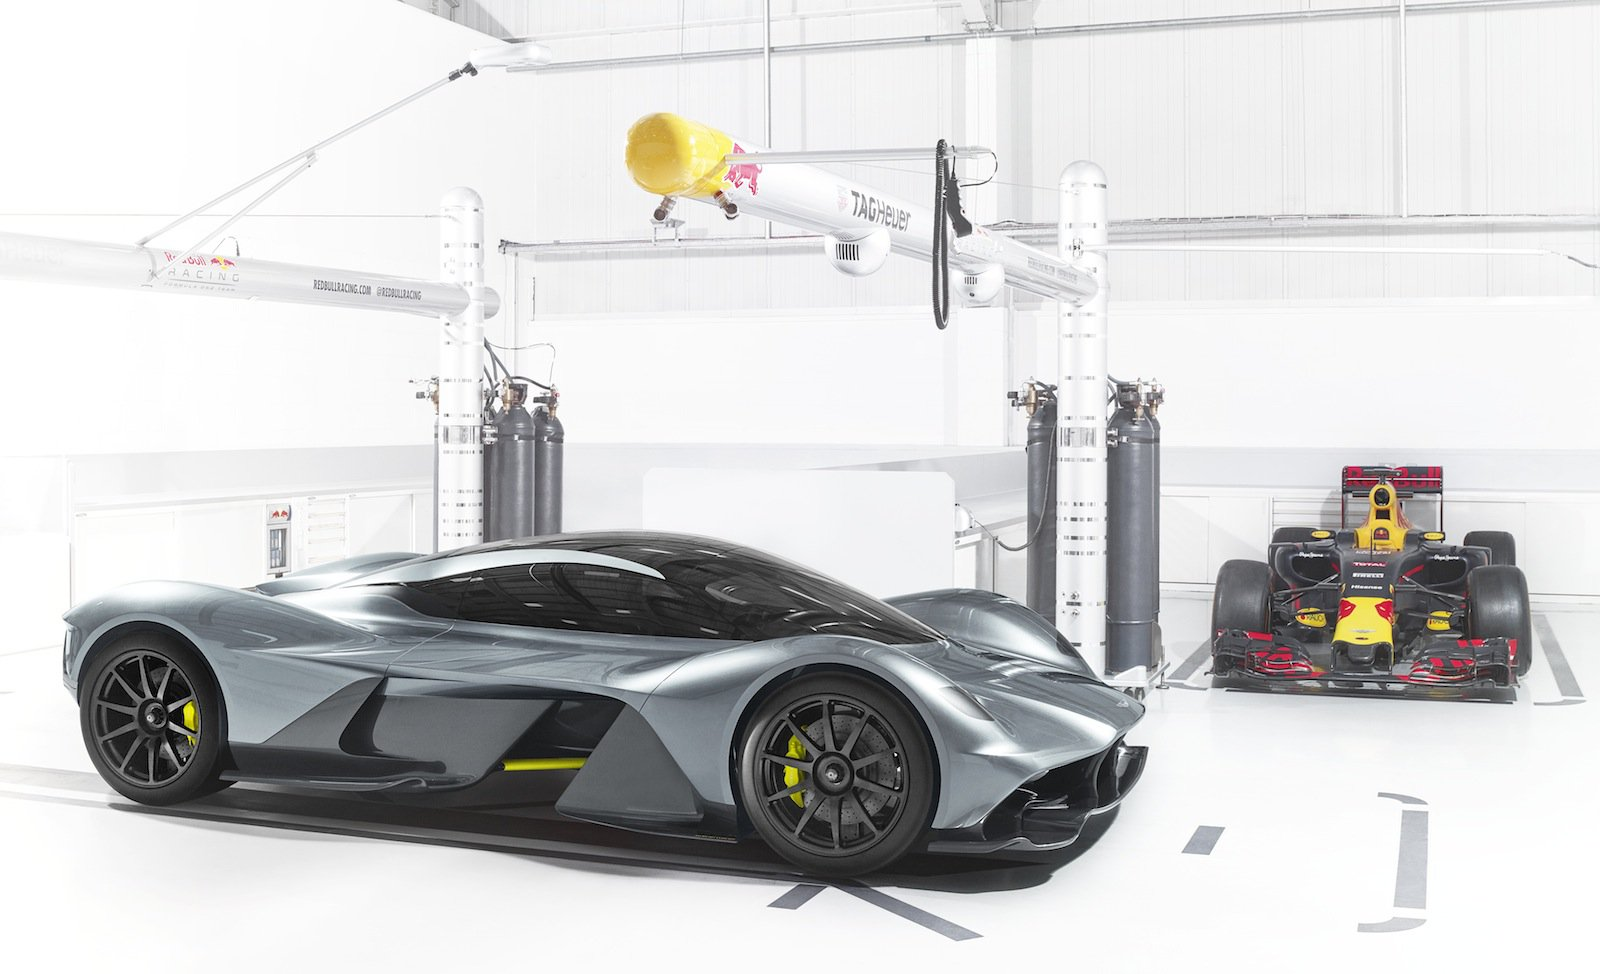 AM-RB 001 Will Make North American Debut in the 6ix